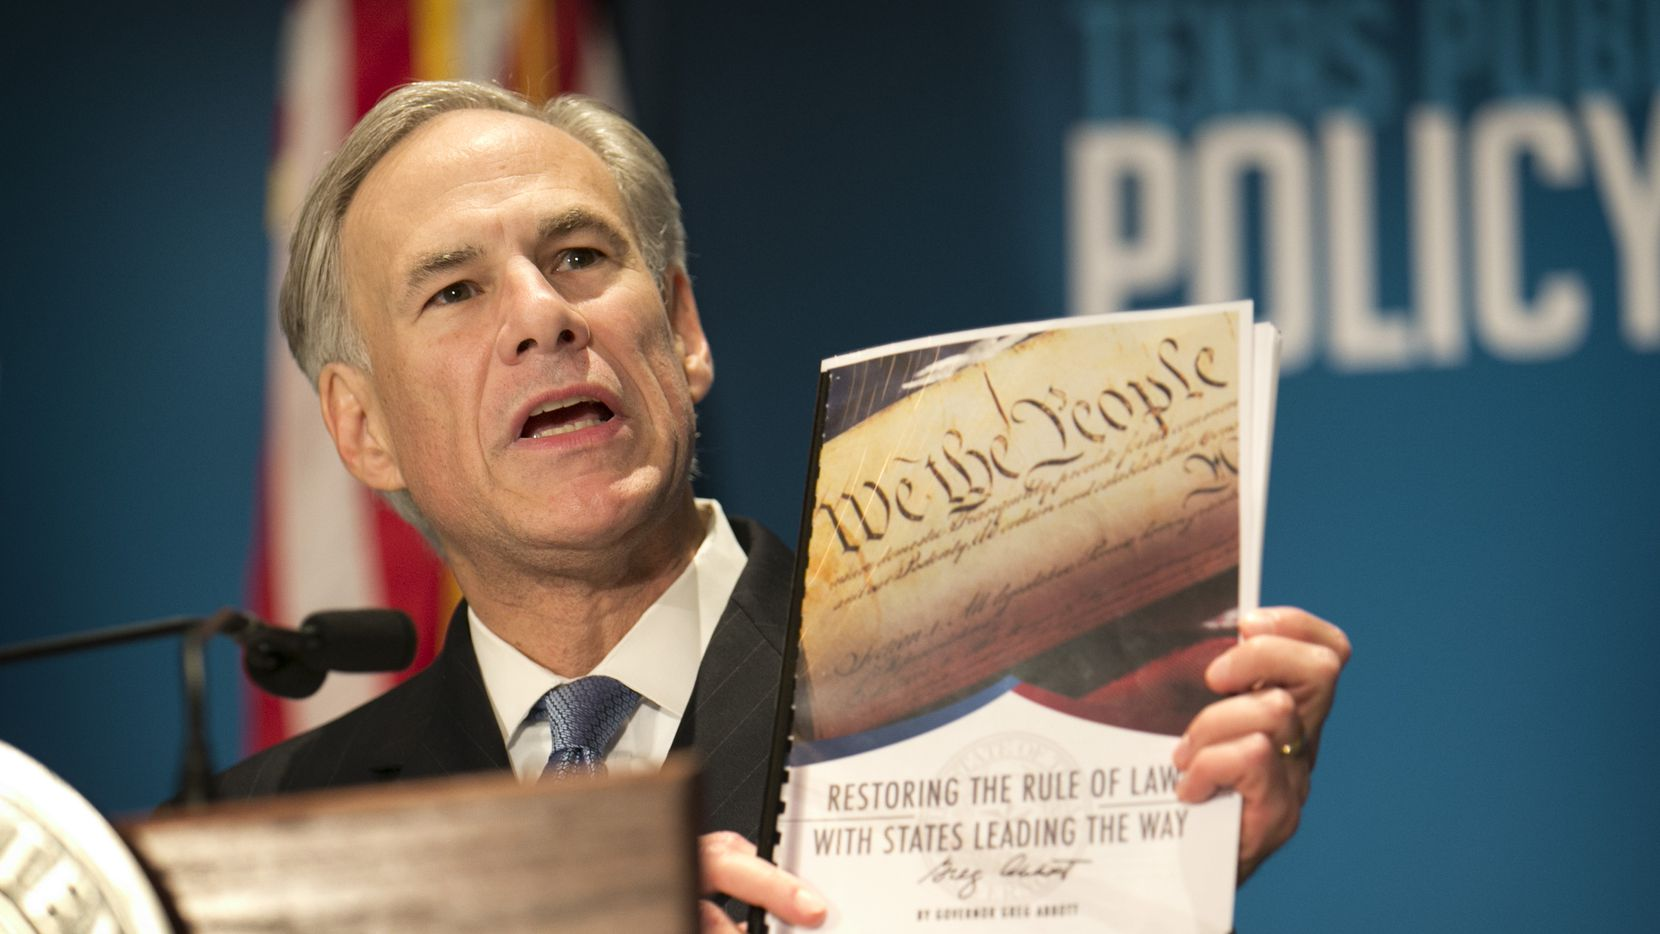 Gov. Greg Abbott called Friday for a convention of states to amend the U.S. Constitution. (Jay Janner/Austin American-Statesman via AP)